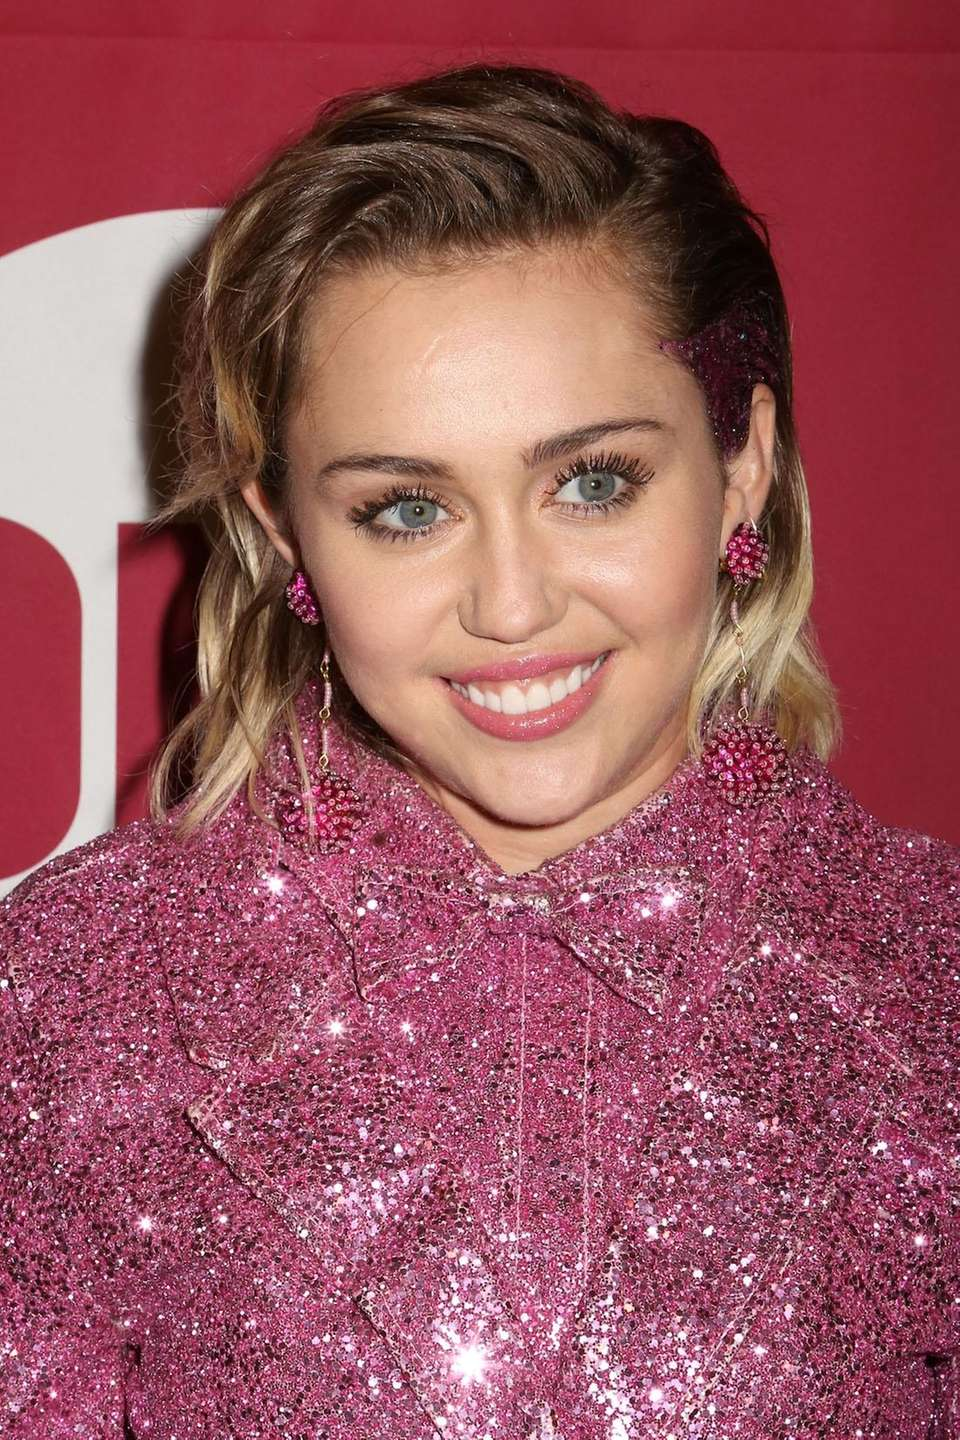 The New York Daily News reported that Miley